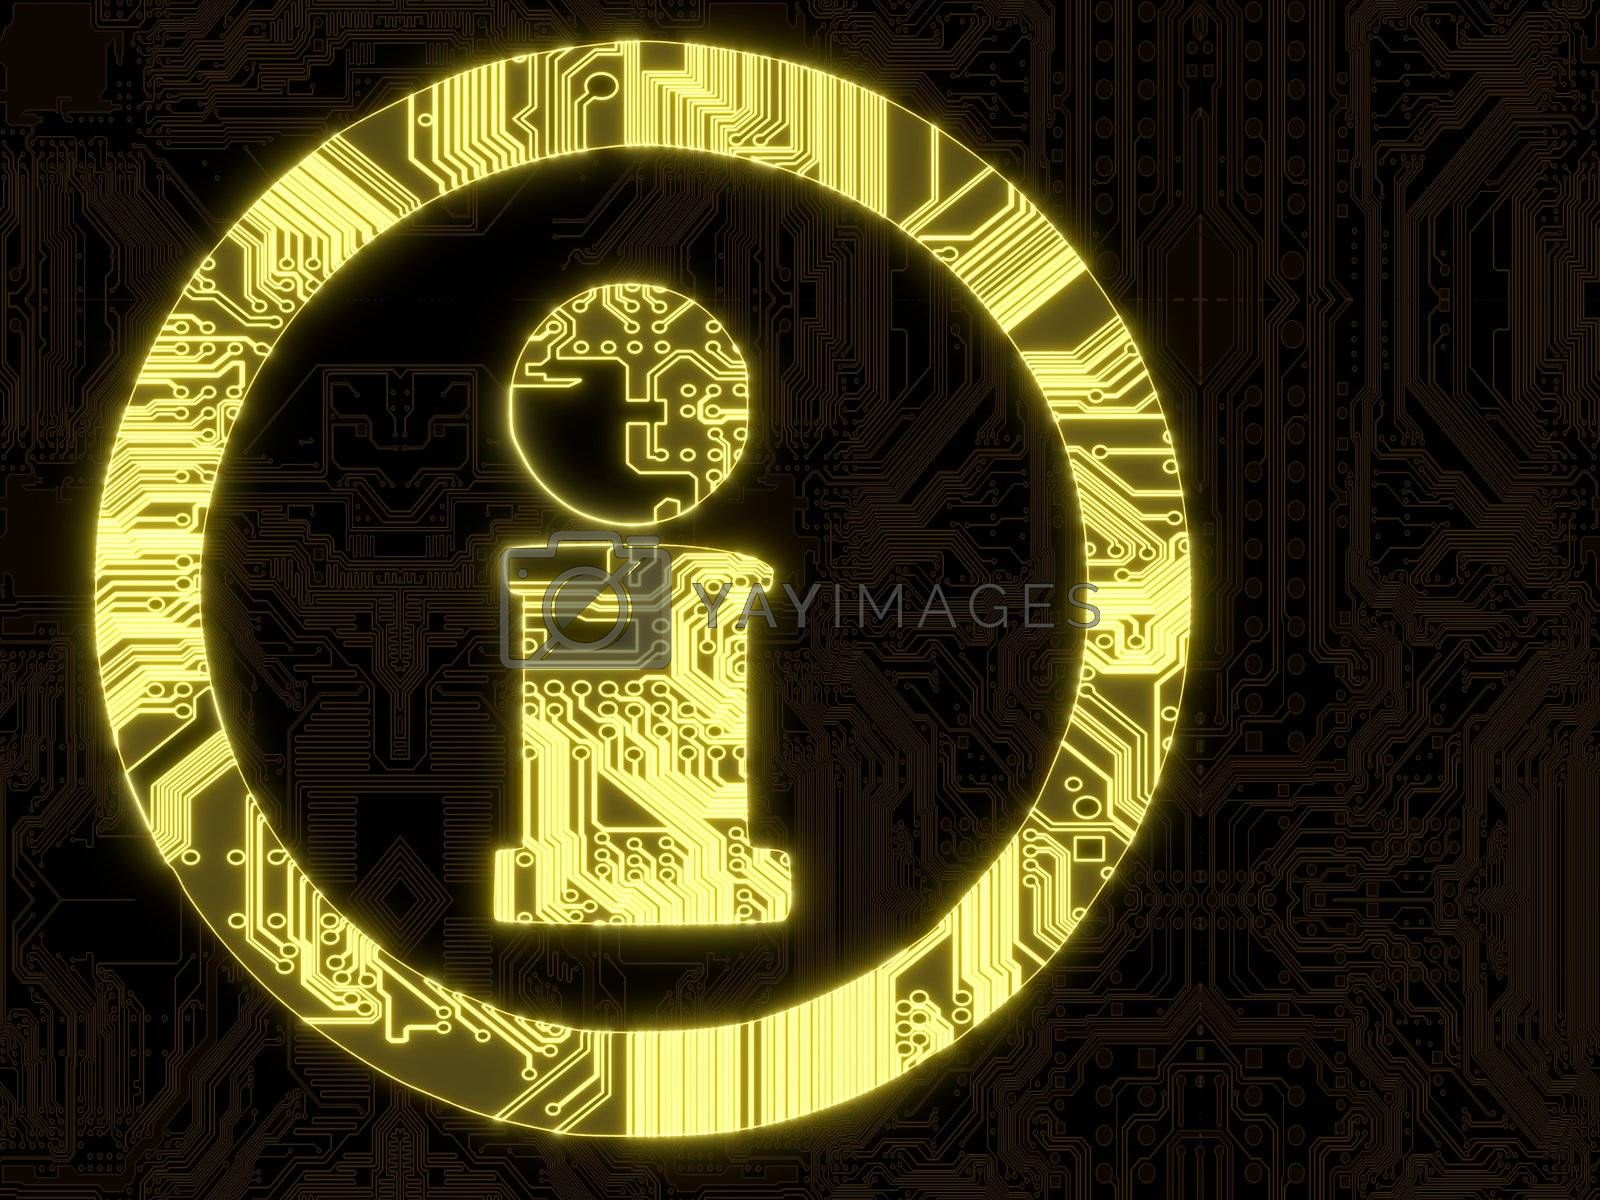 3D Graphic flare glowing information symbol in a dark background on a computer chip